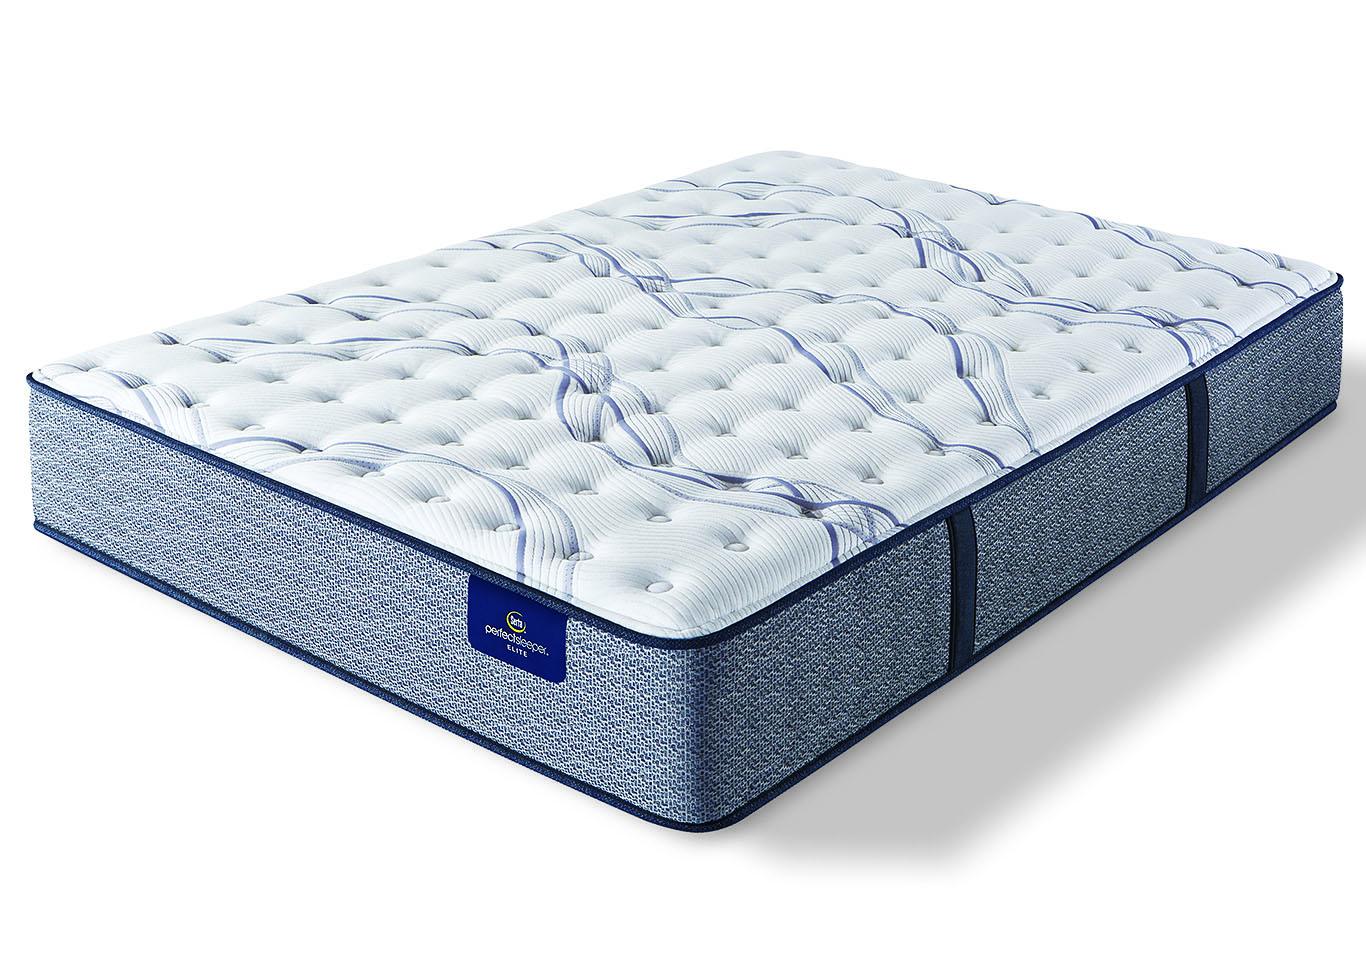 Trelleburg II Firm Queen Mattress,Serta